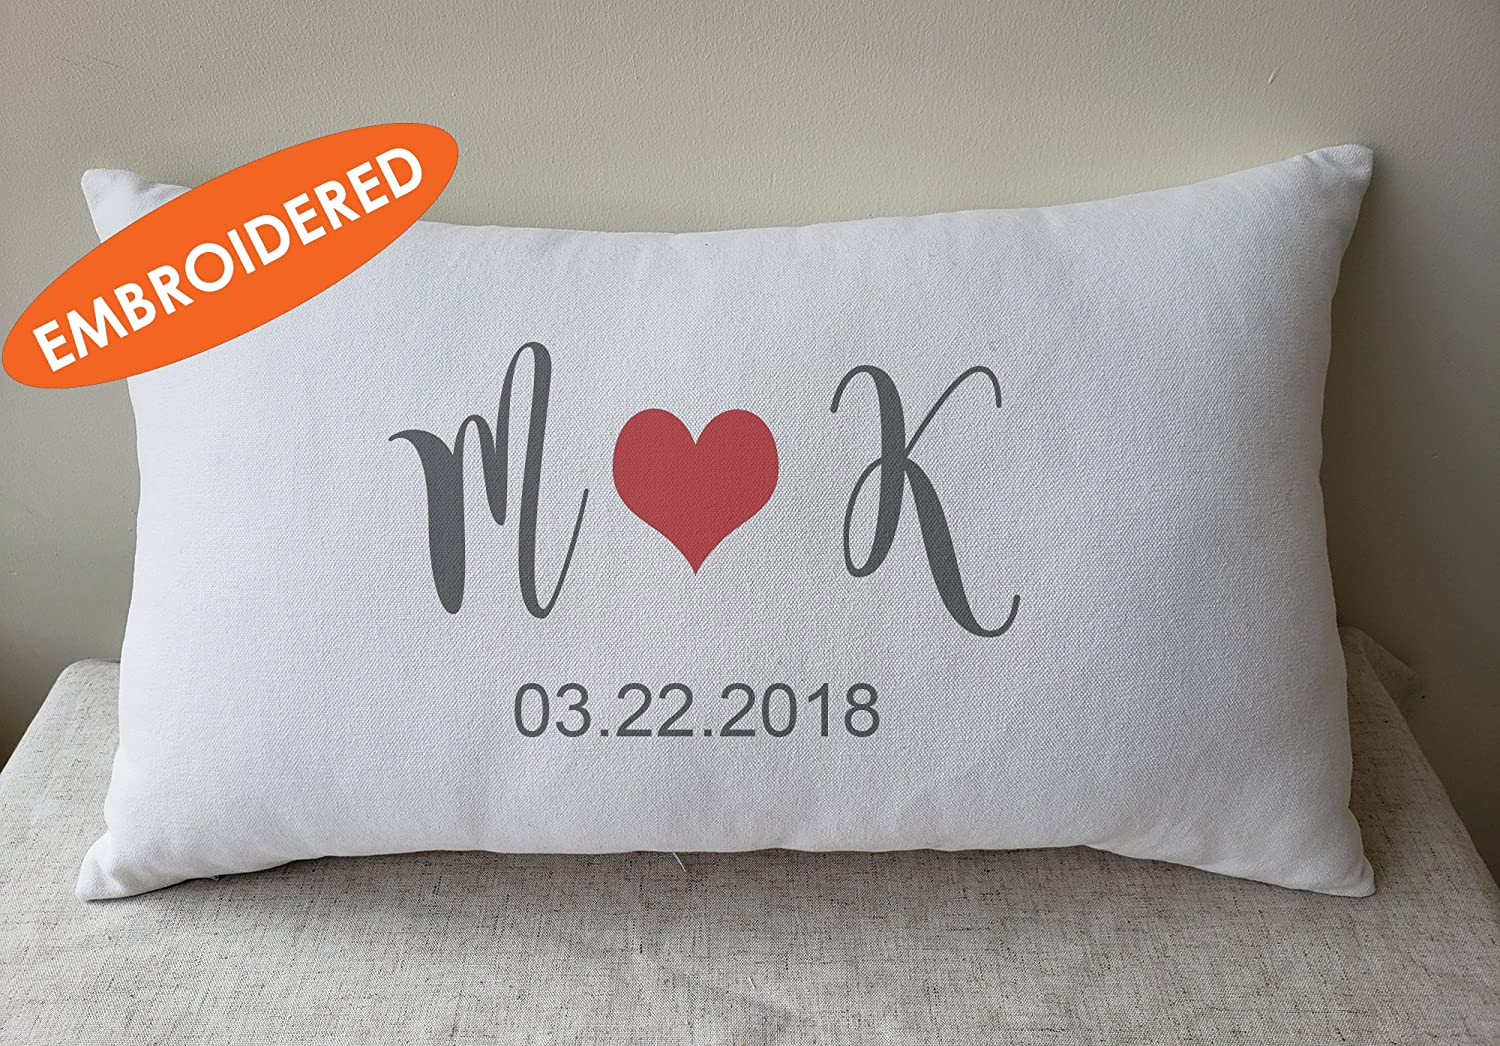 DecorHouzz Embroidered Personalized pillow, Couple names pillow, Valentines, anniversary gift, newlywed pillow, Wedding Day Pillow, Name Date Cushion cover, shower gift throw pillow, Anniversary Gift